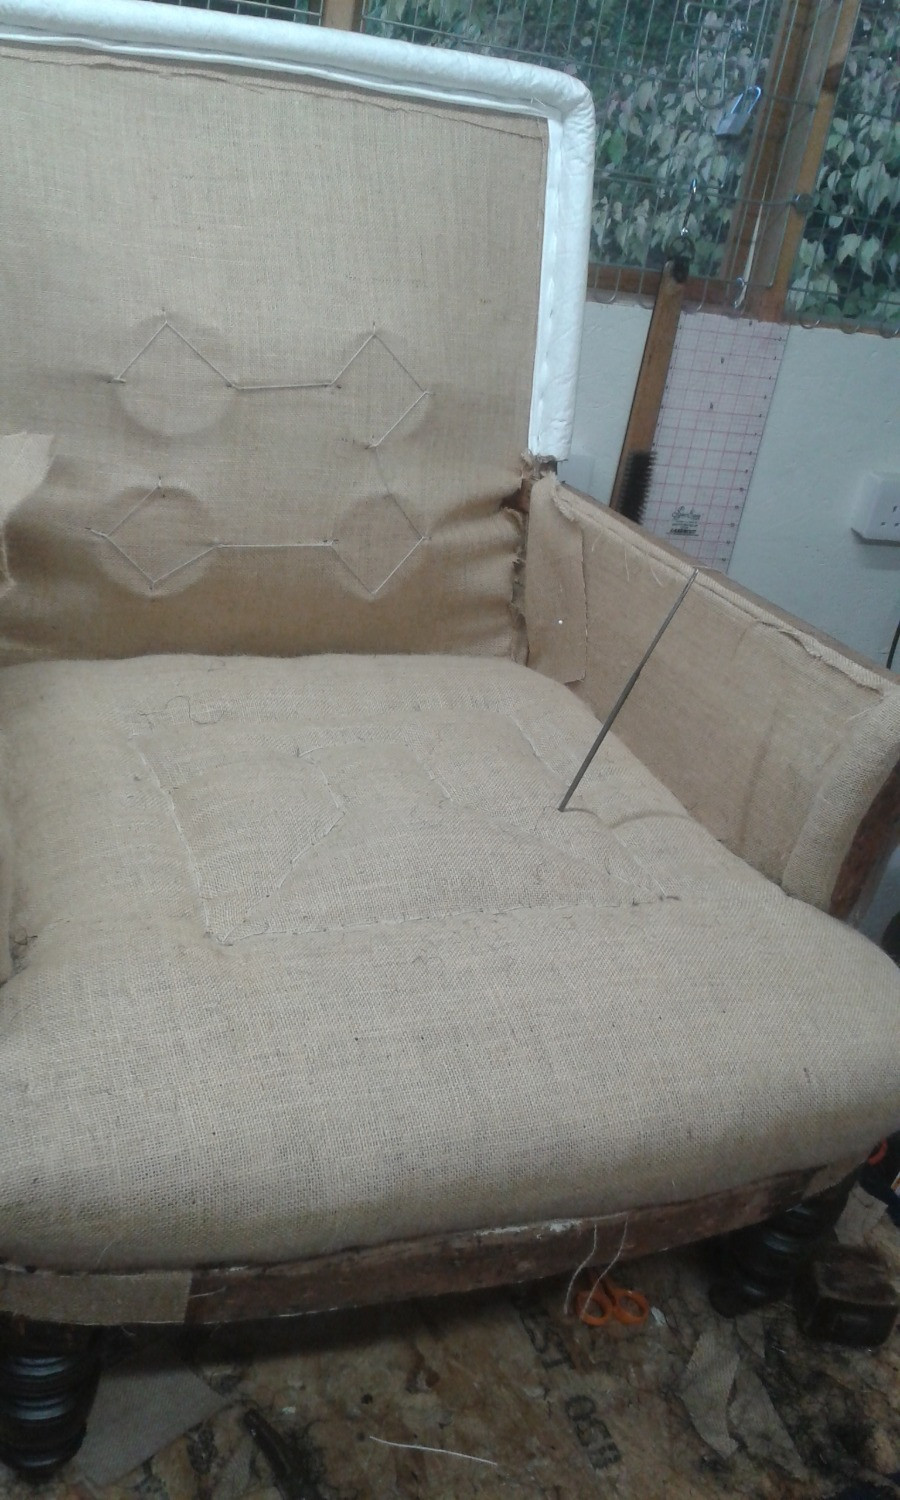 The seat has had it's first stuffing and a layer of hessian has been applied ready for stitching which forms the shape of the seat and firms up